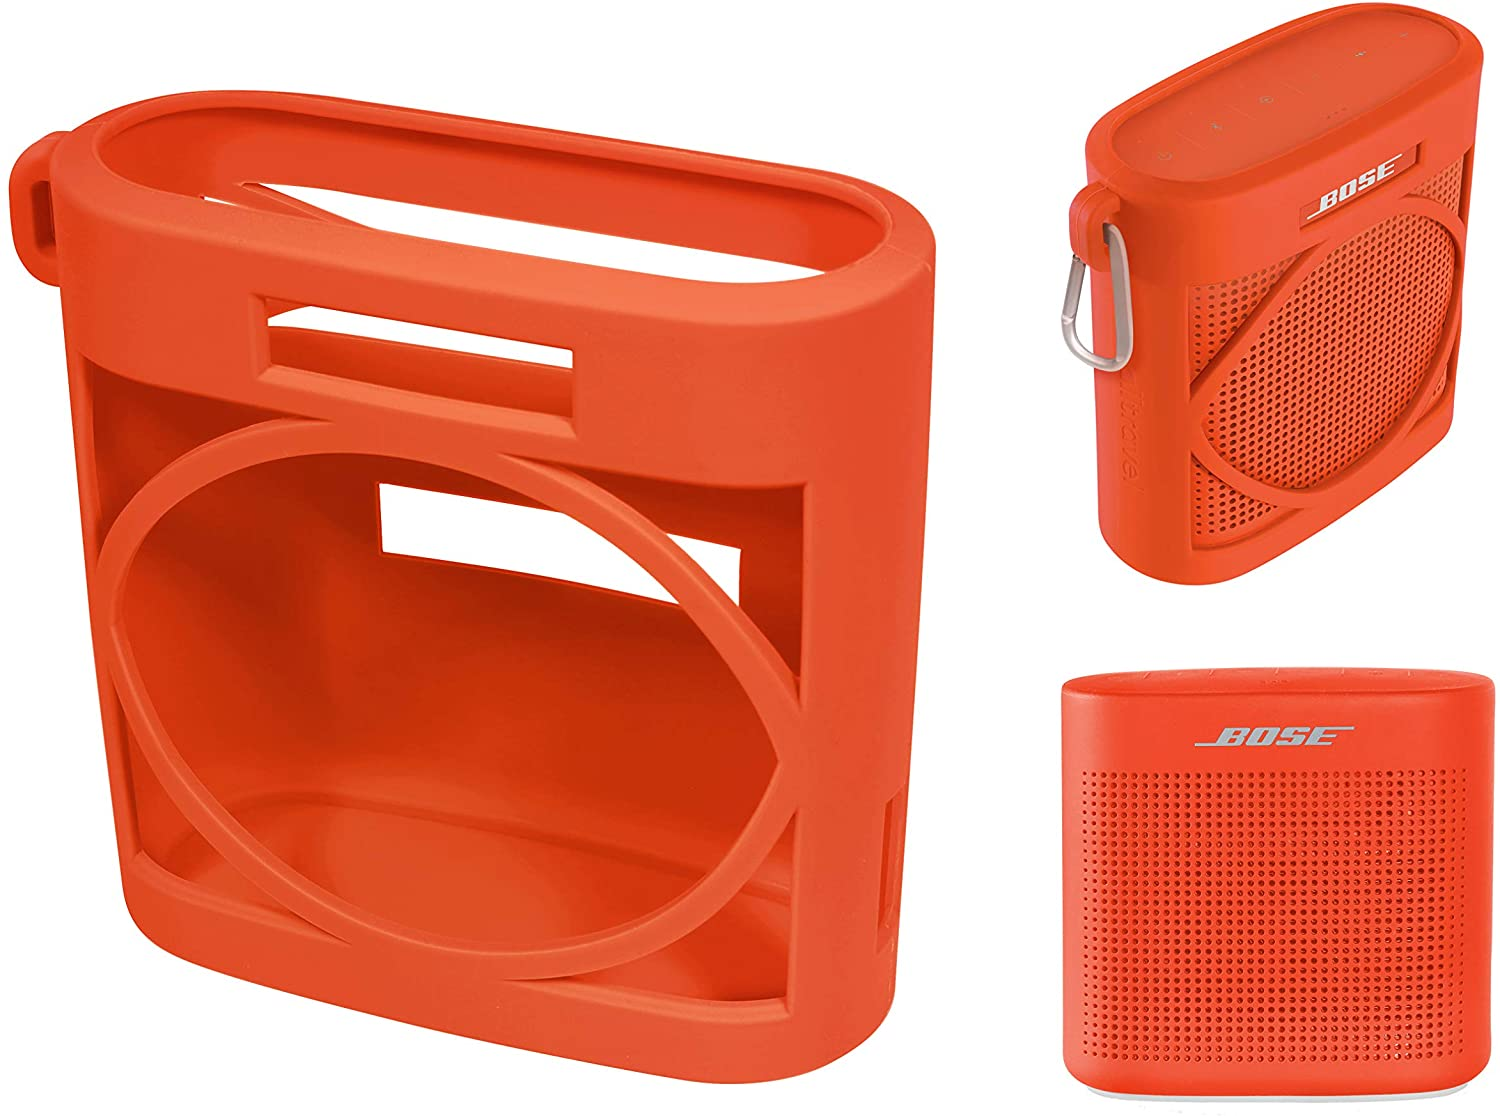 Silicone Cover Skin for Bose SoundLink Color Bluetooth Speaker II, by Alltravel, Full 6 Directions Protection, Customized Skin with Color and Shape Matching(Coral Red)